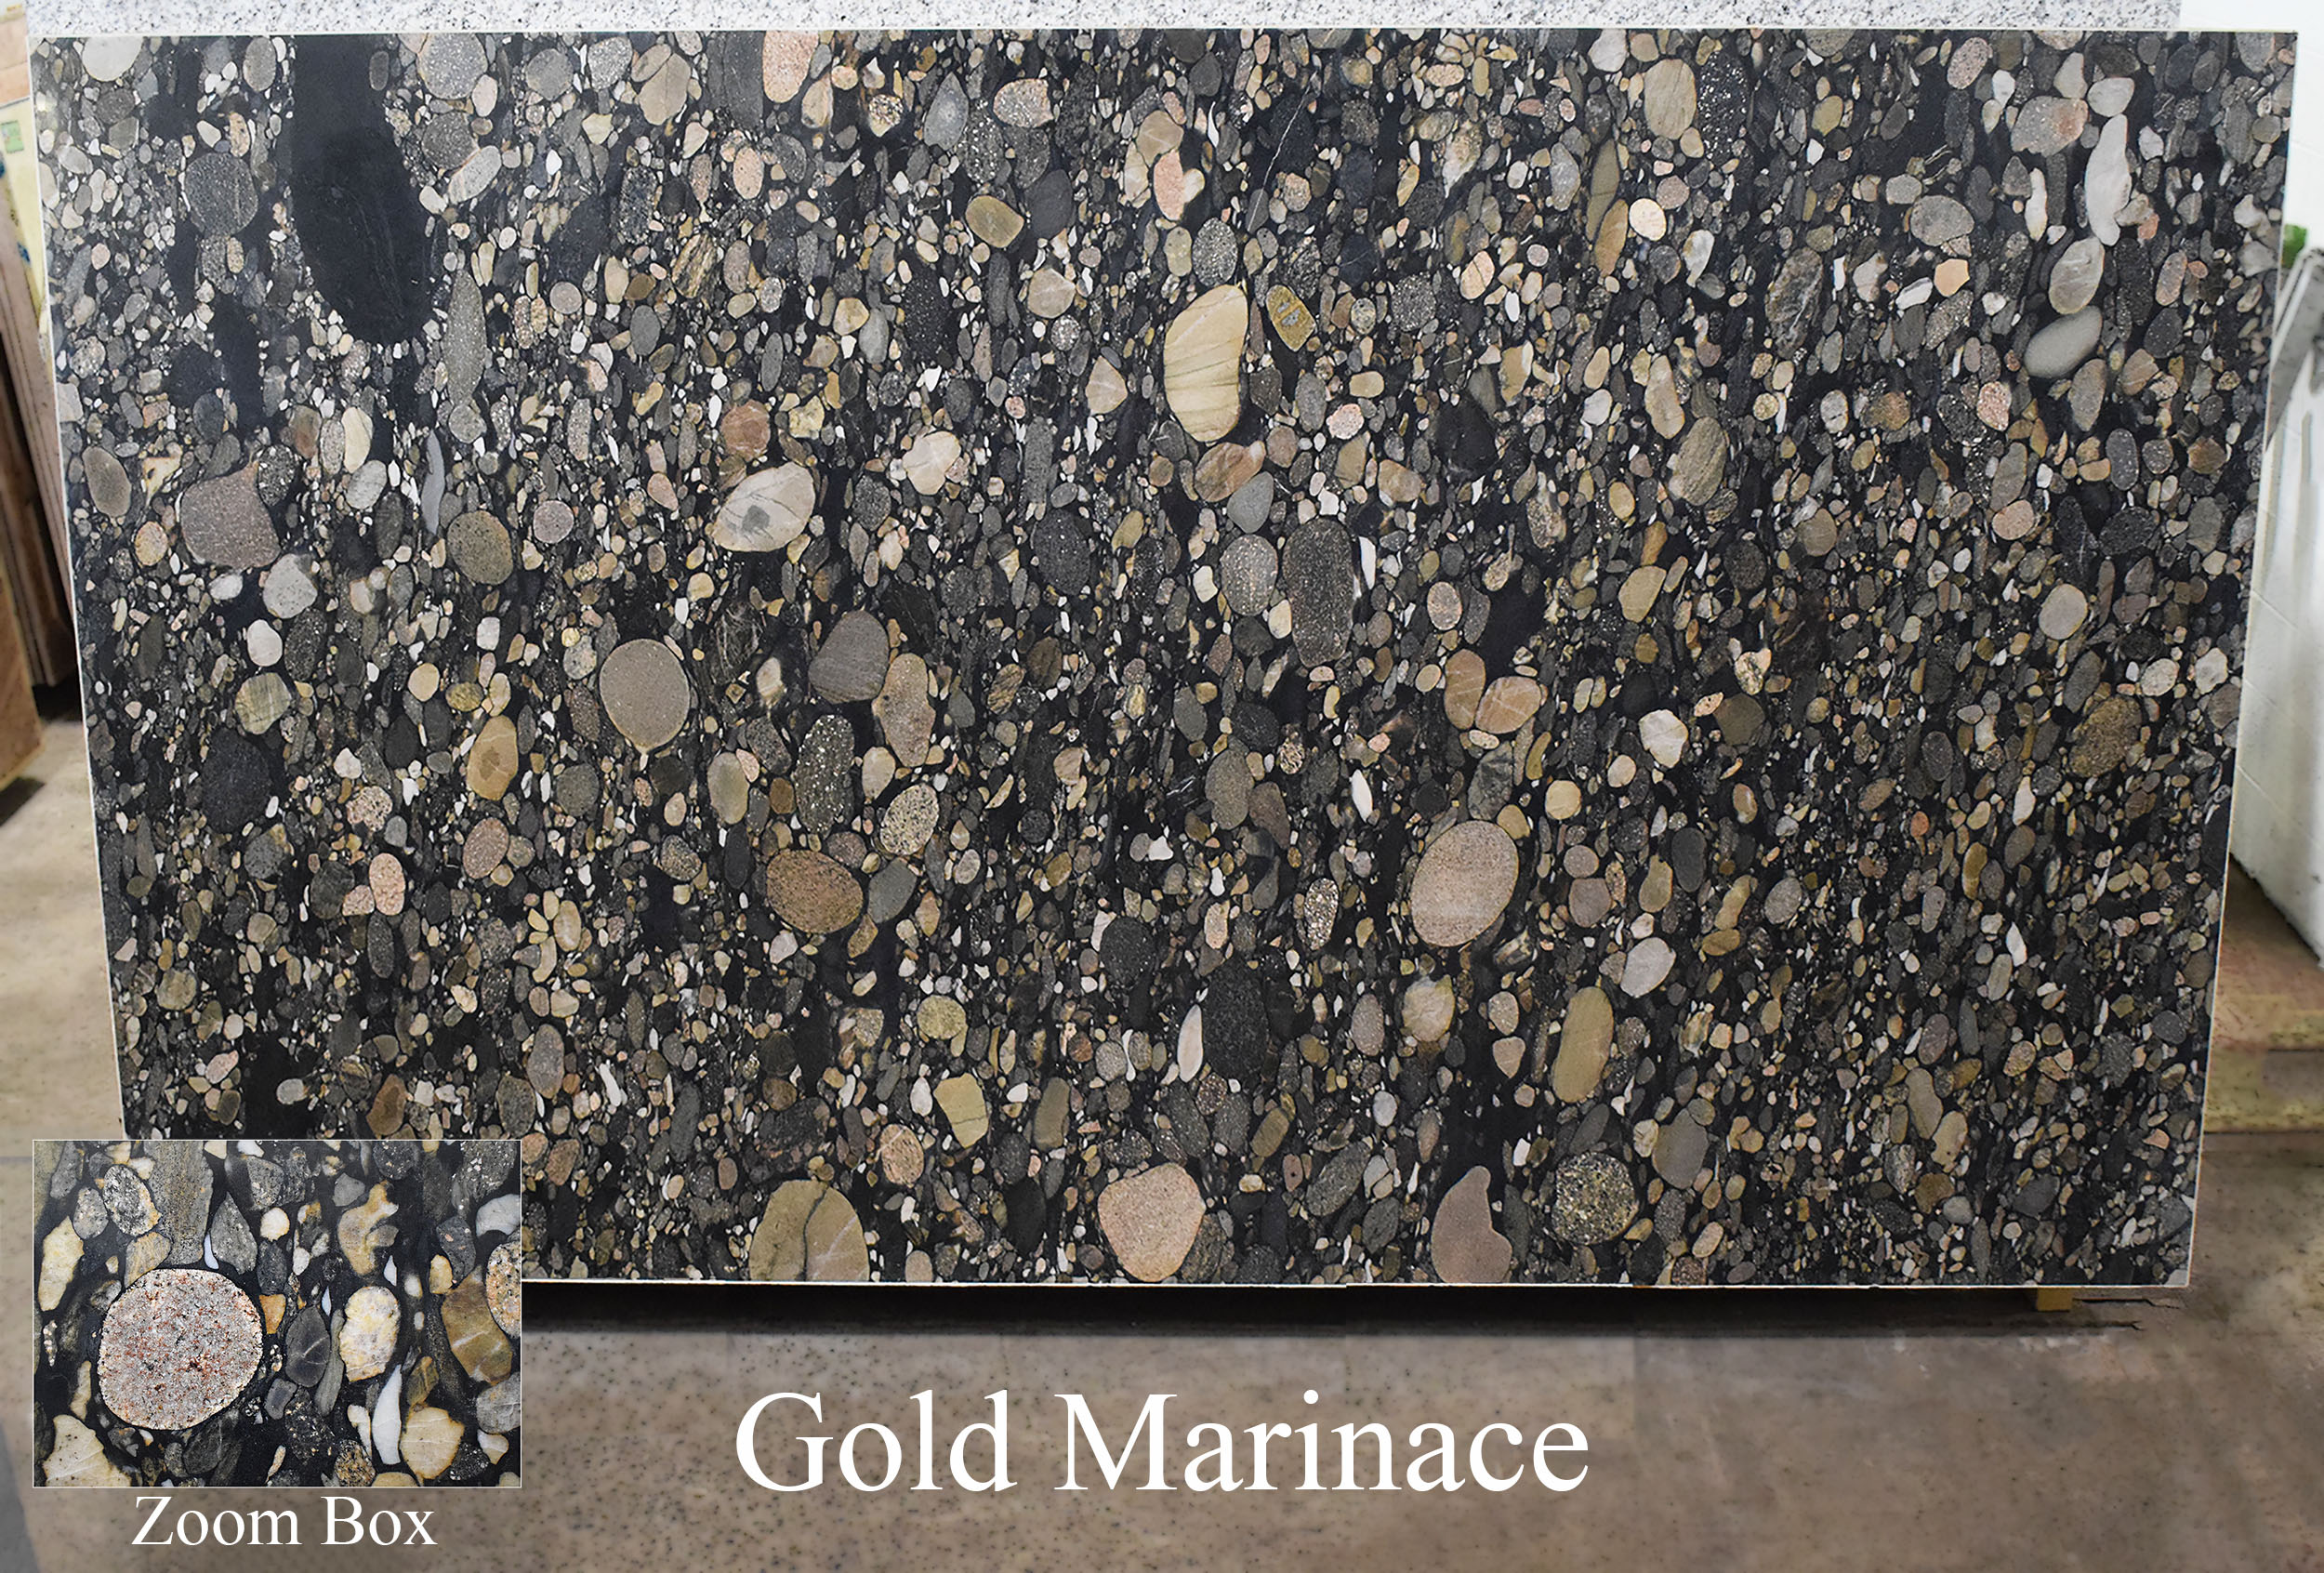 GOLD MARINACE